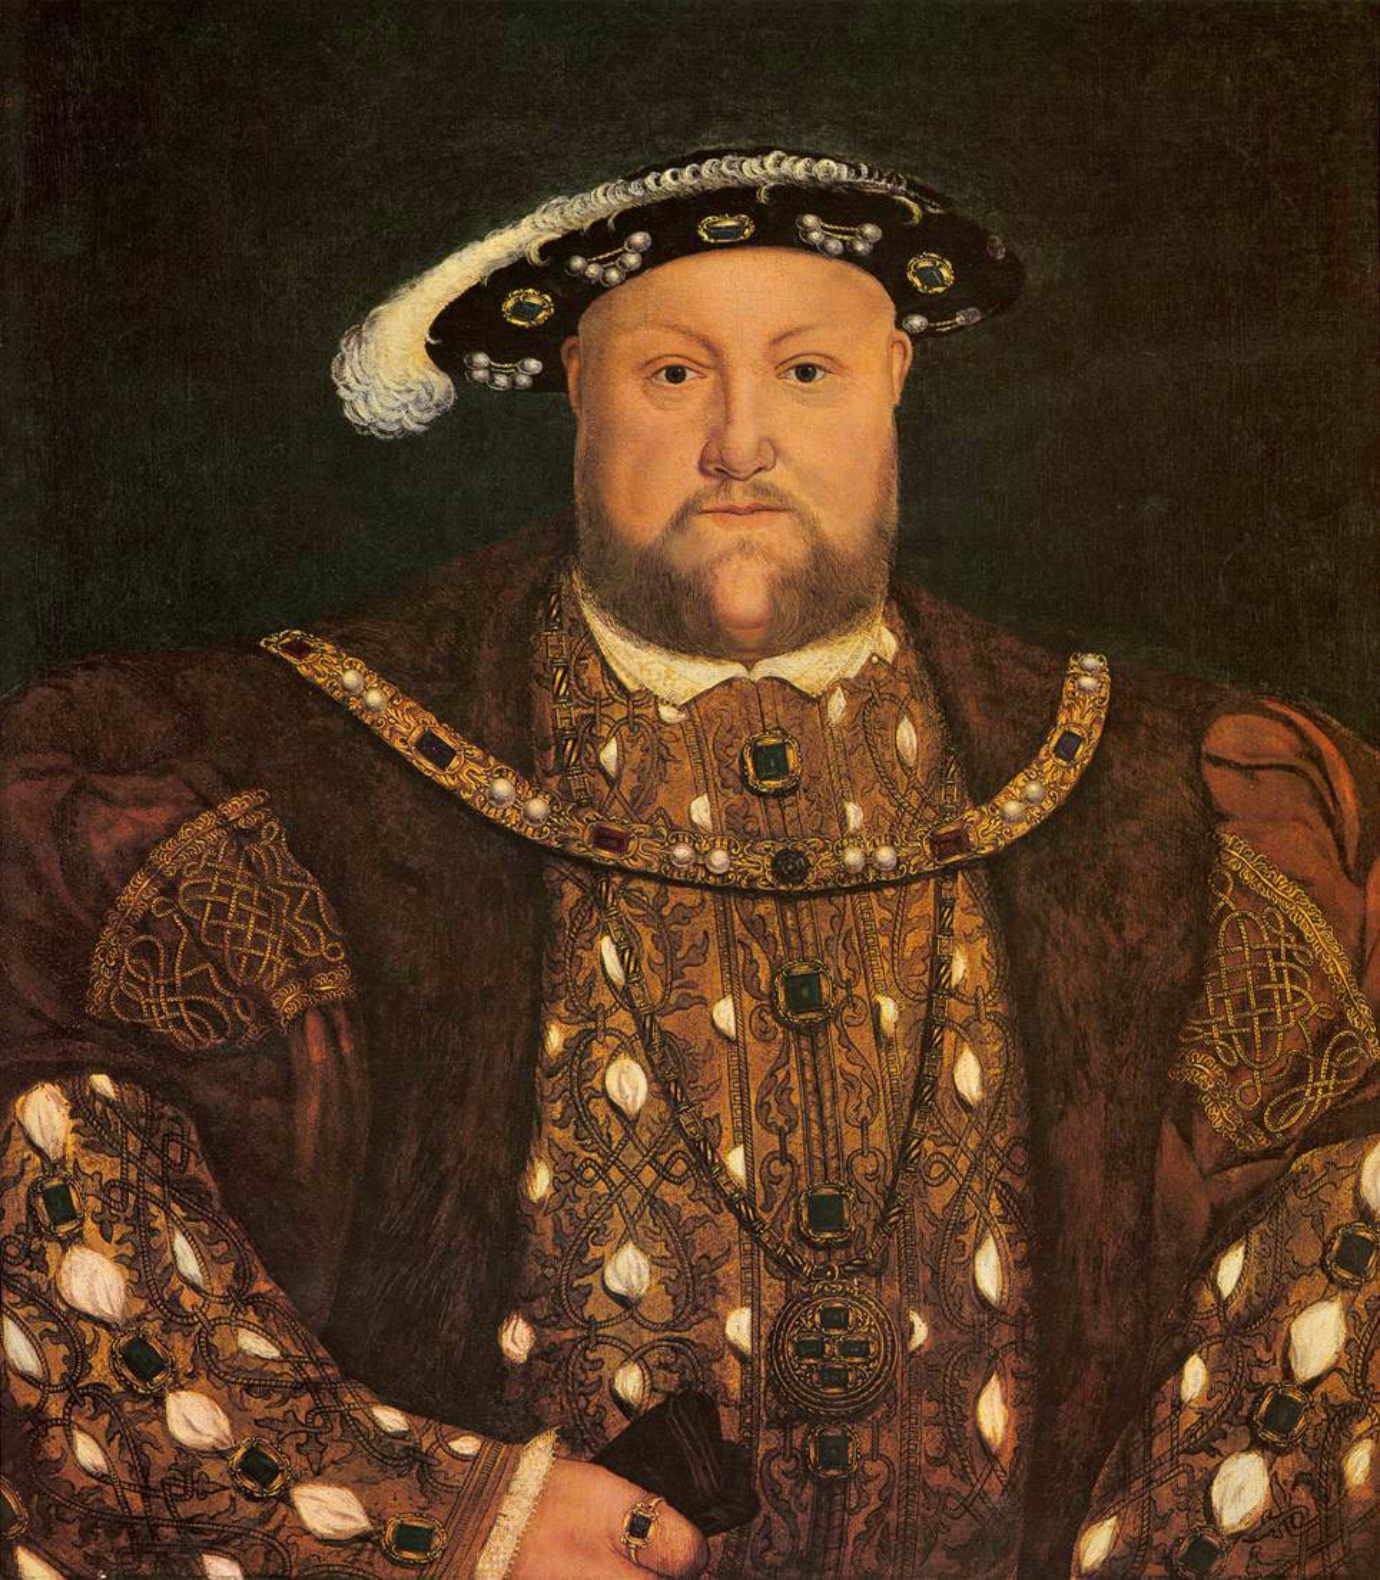 Primary homework help king henry viii